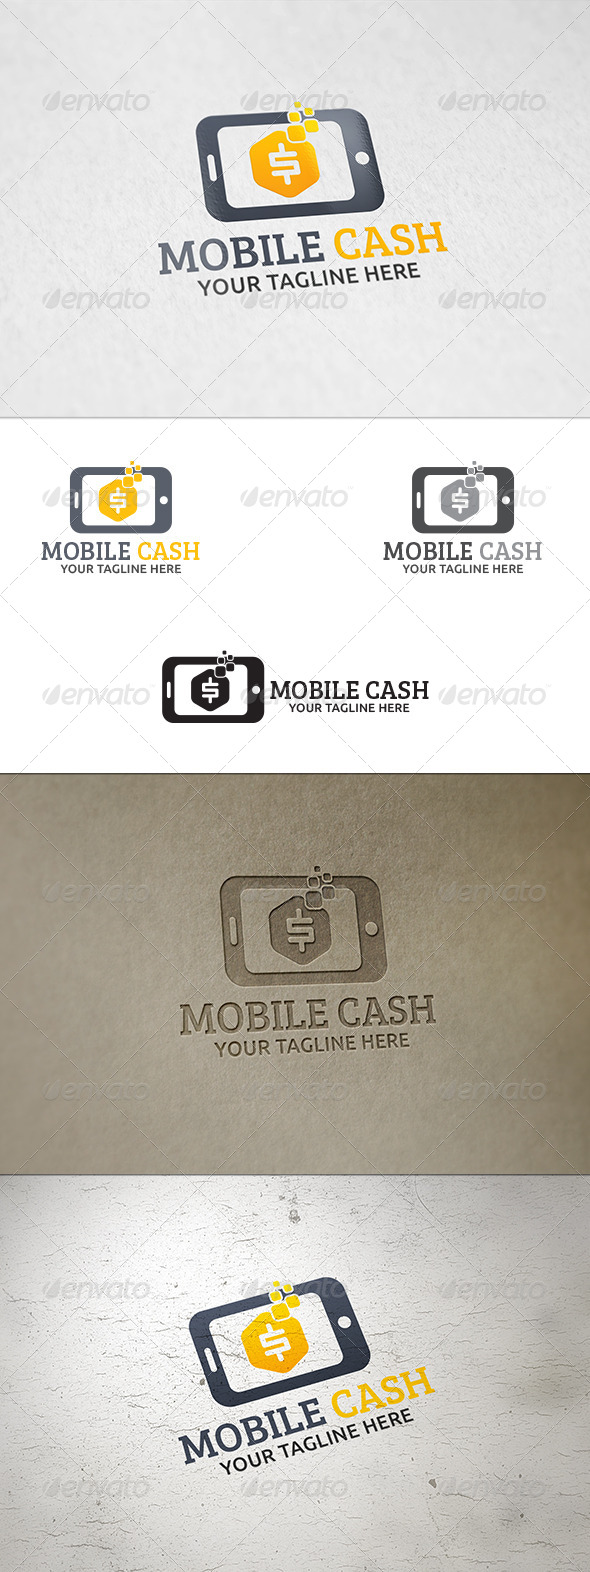 GraphicRiver Mobile Cash Logo Template 8511302